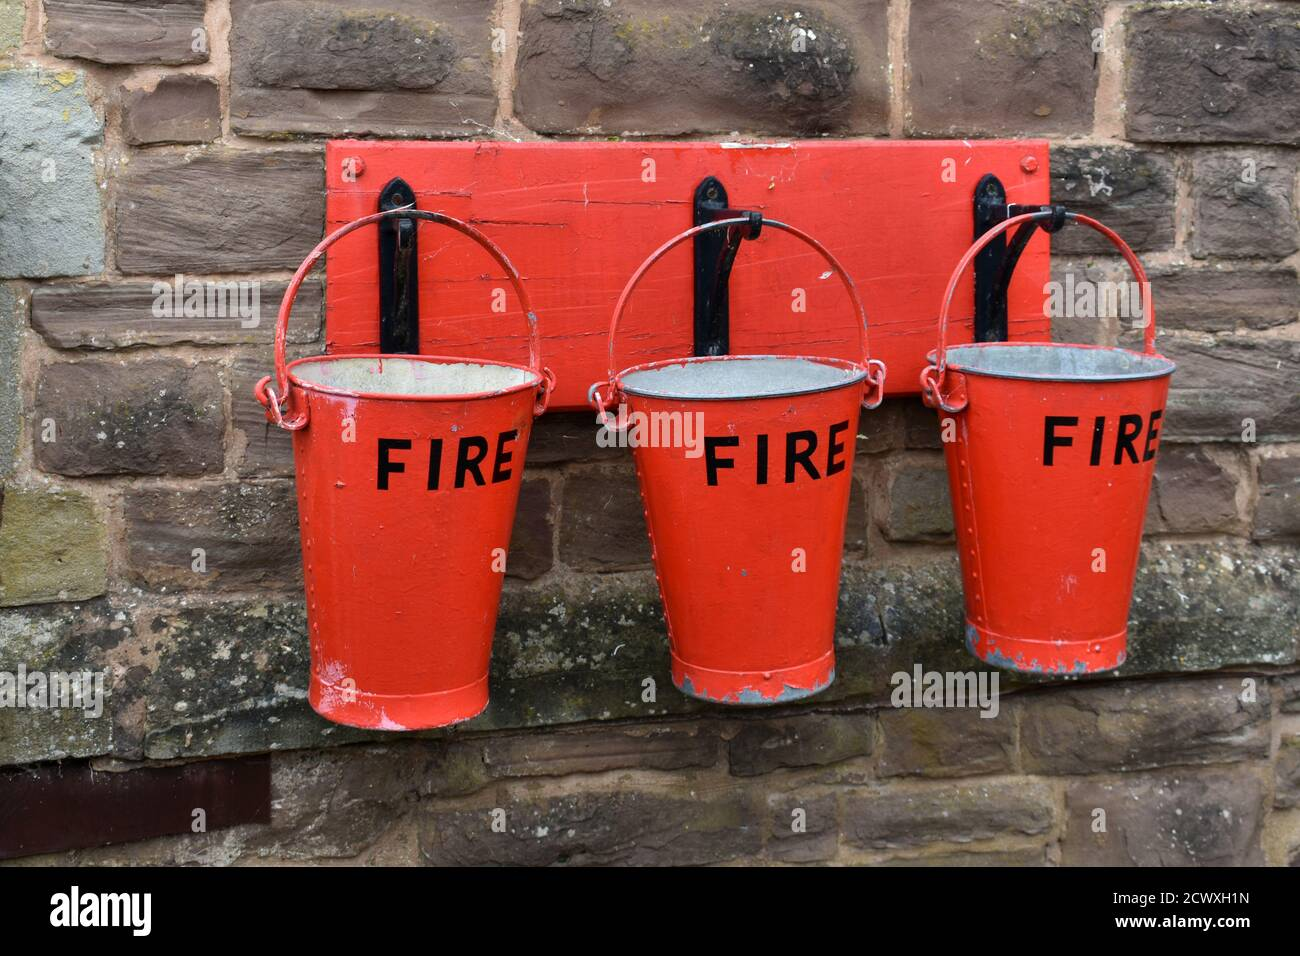 close up of 3 red Fire buckets hanging from hooks on a stone wall outside Stock Photo